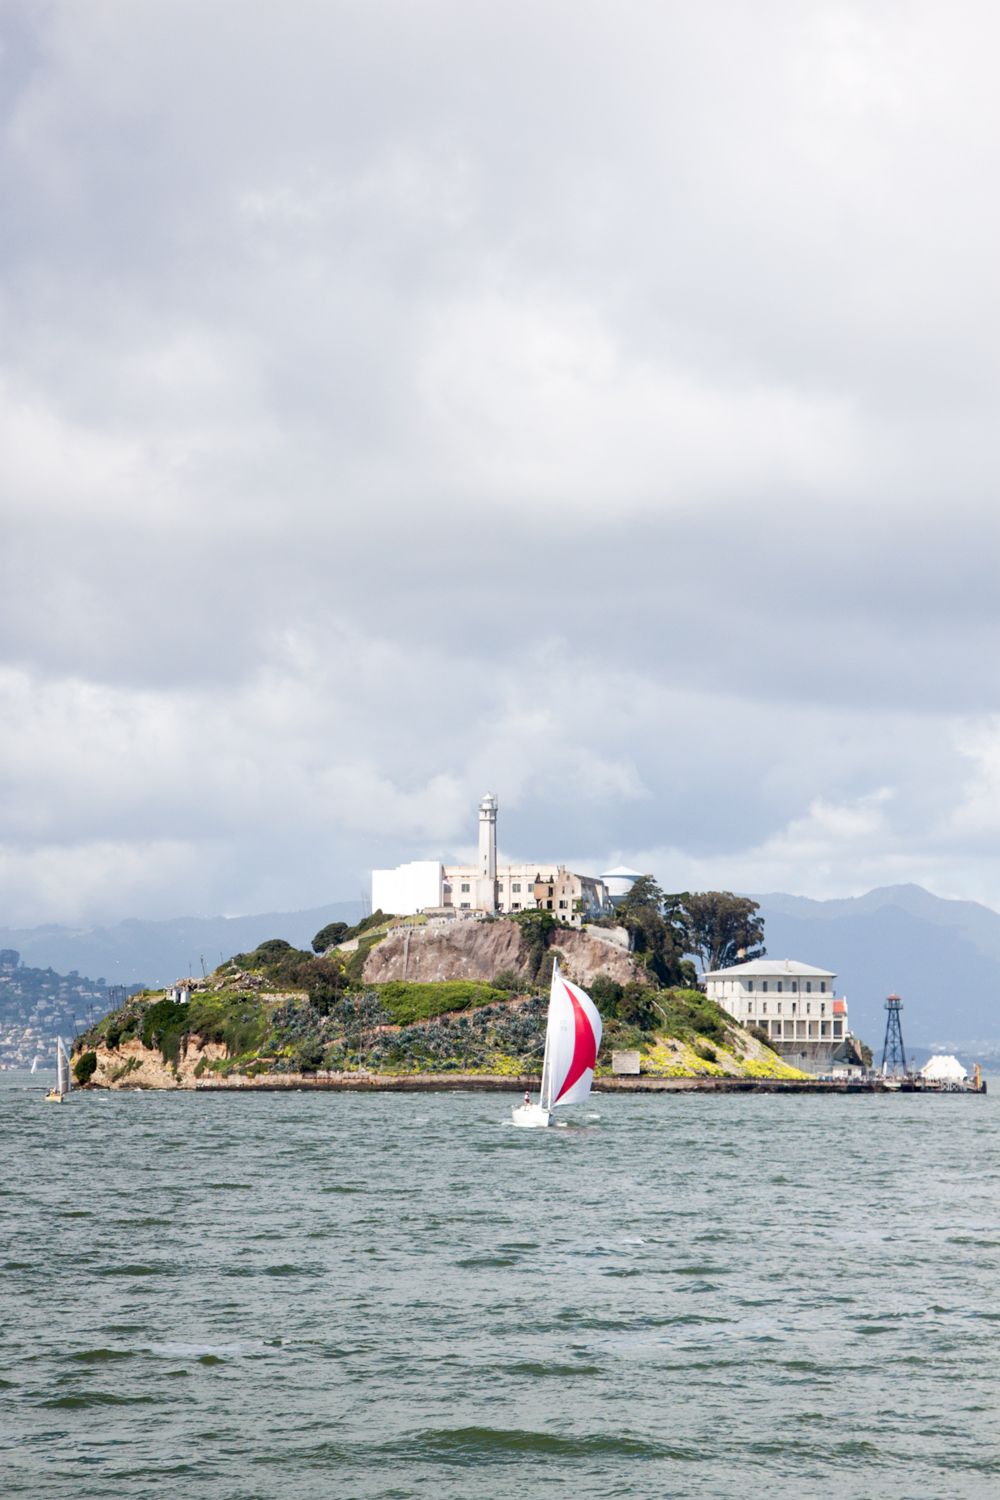 A view of Alcatraz Island from the ferry